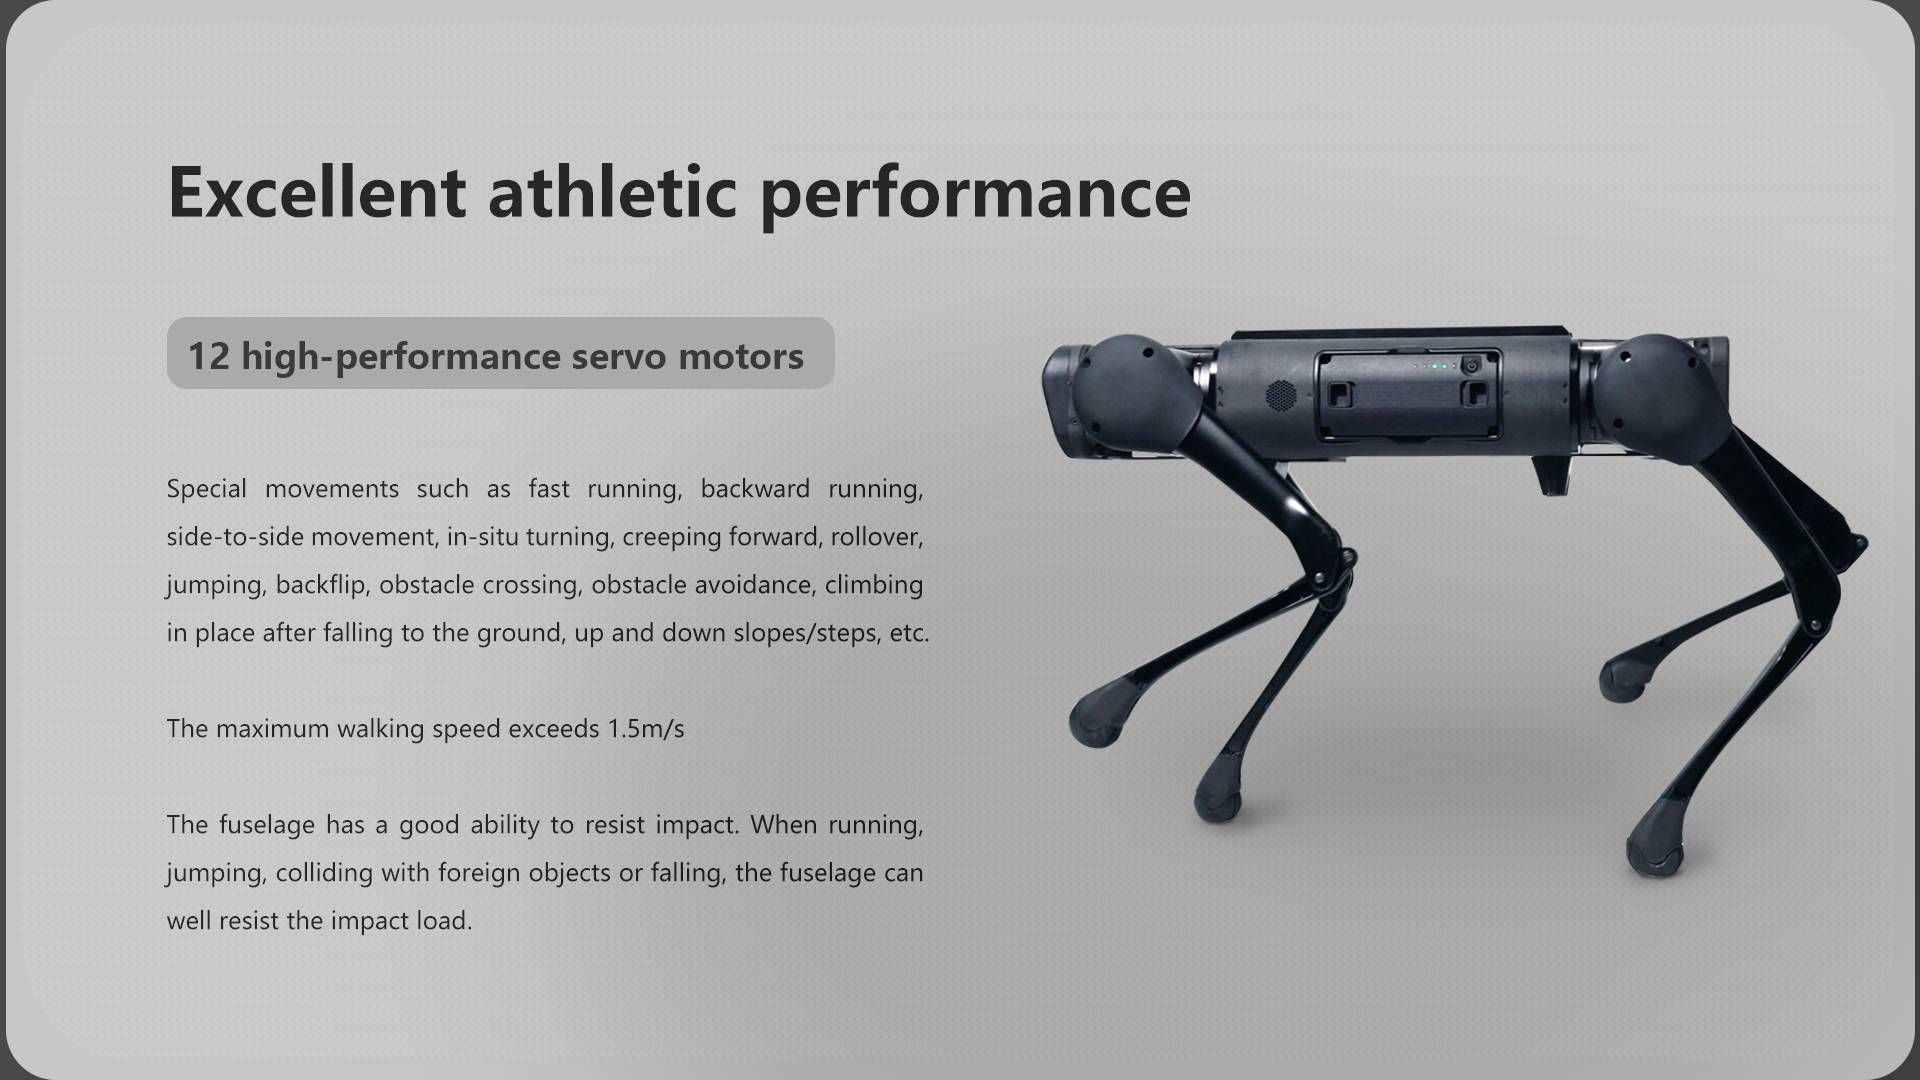 Excellent athletic performance